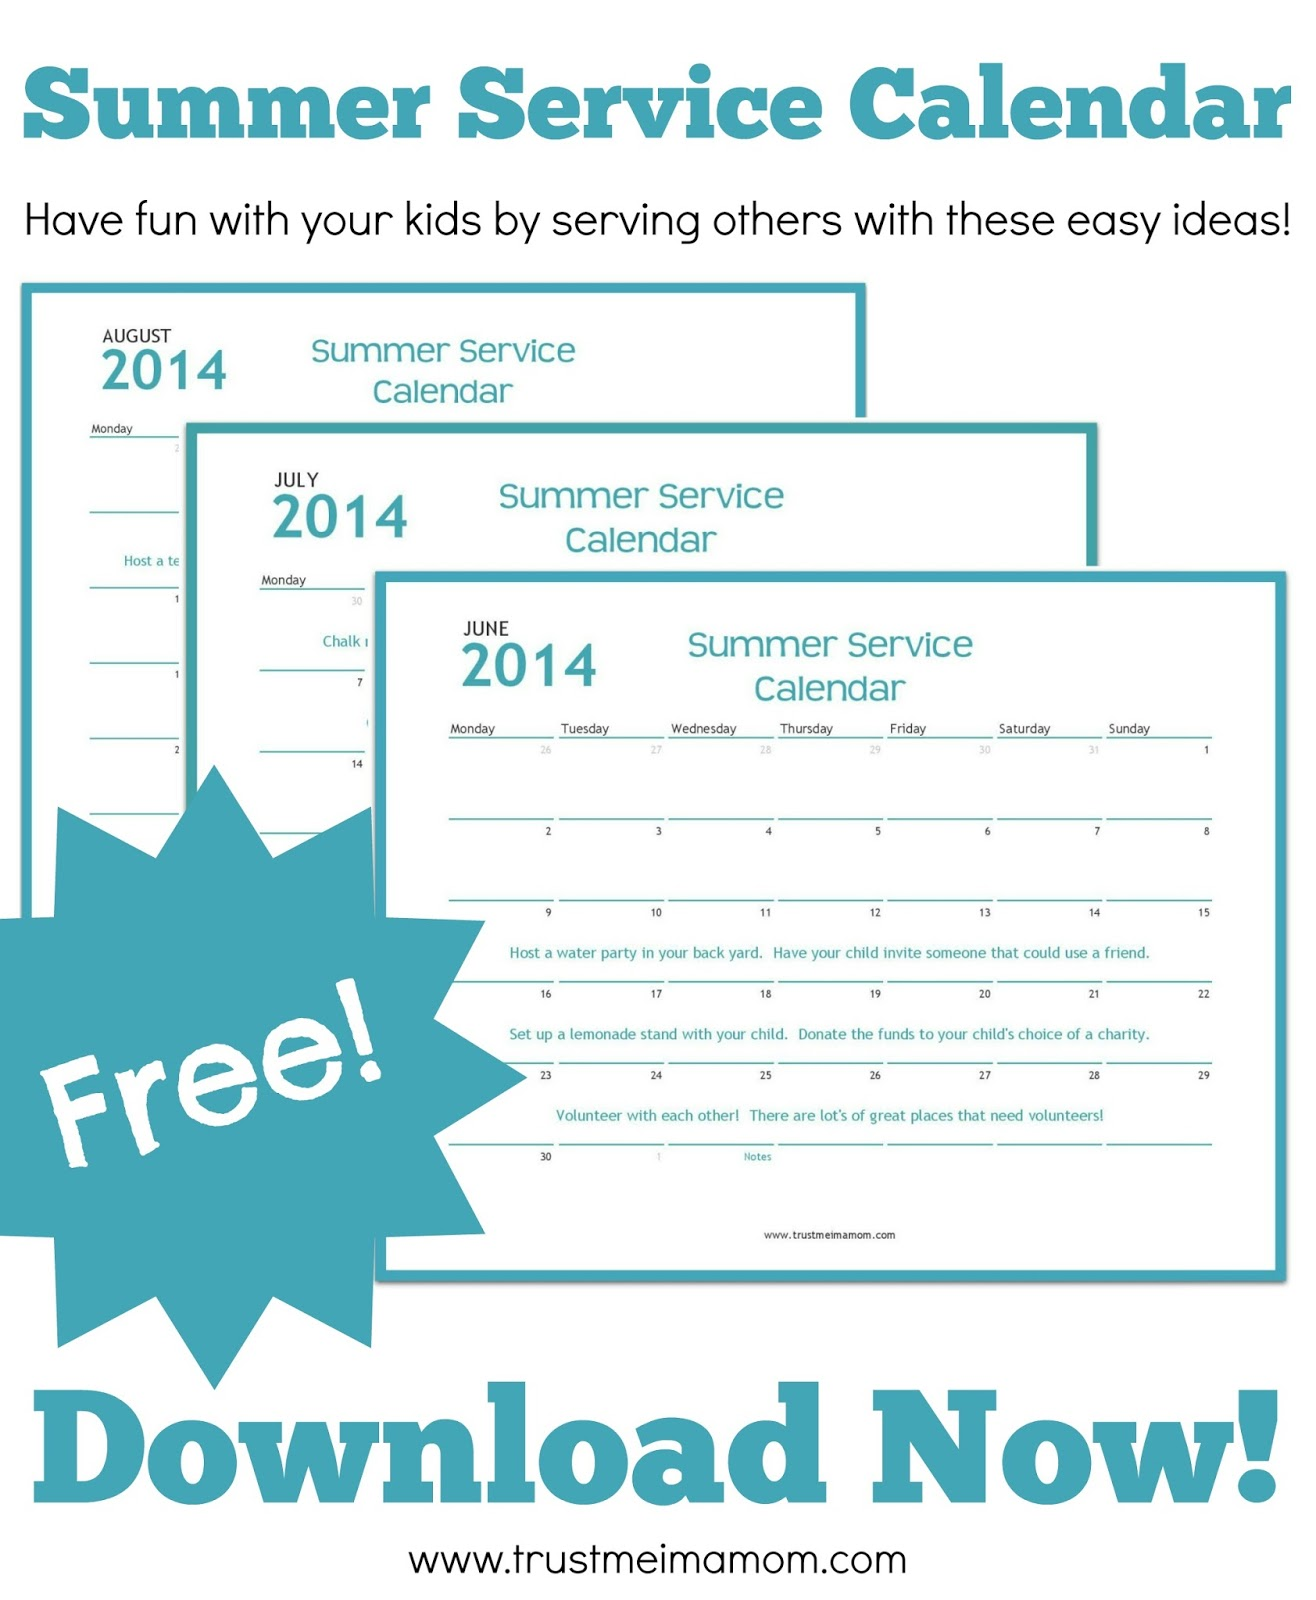 Download a free Summer Service Advent Calendar filled with easy ideas for how you can serve with your kids this Summer!